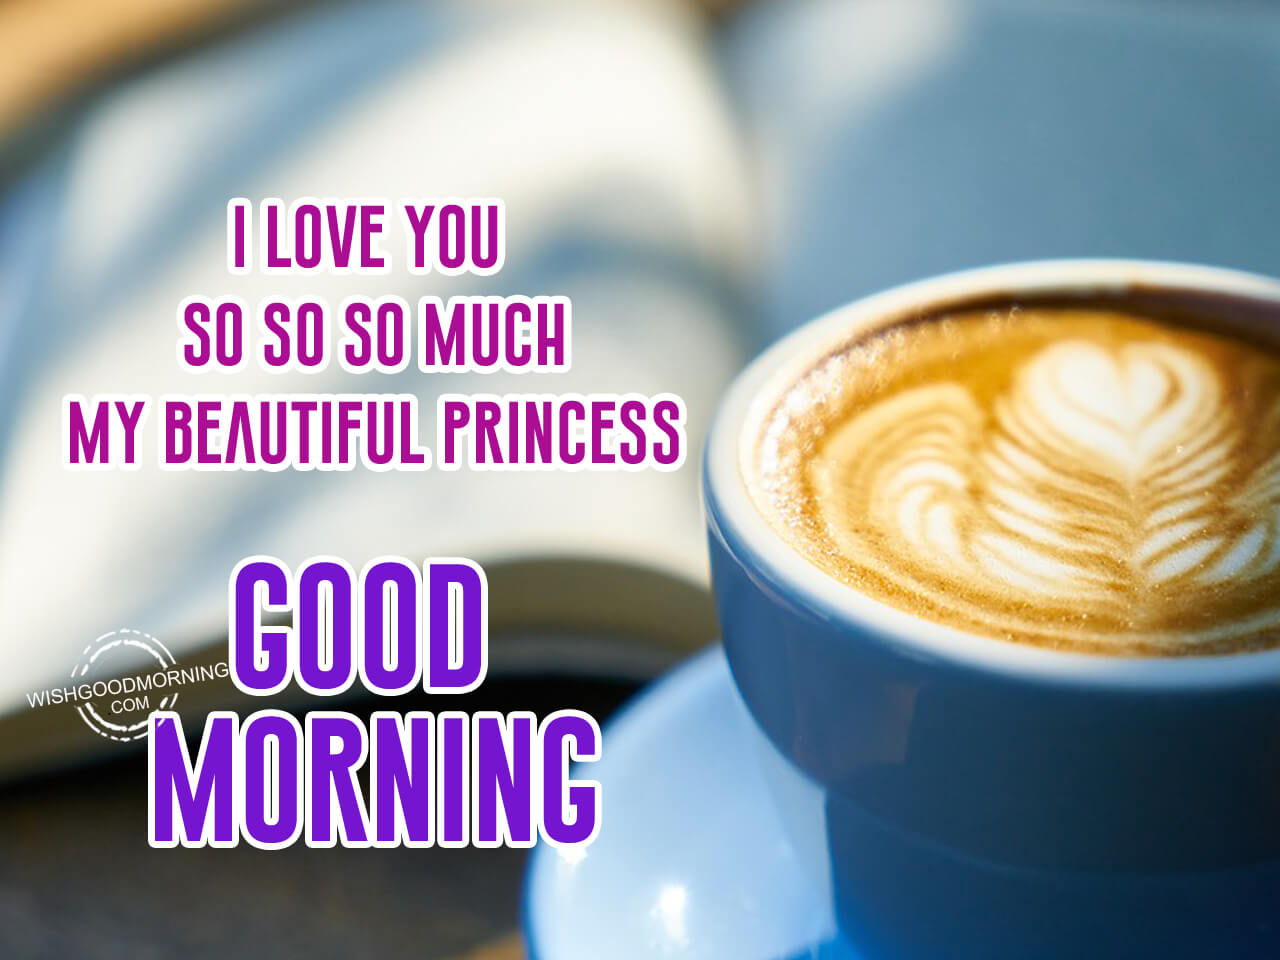 Good Morning I Love You So Much Good Morning Wi...